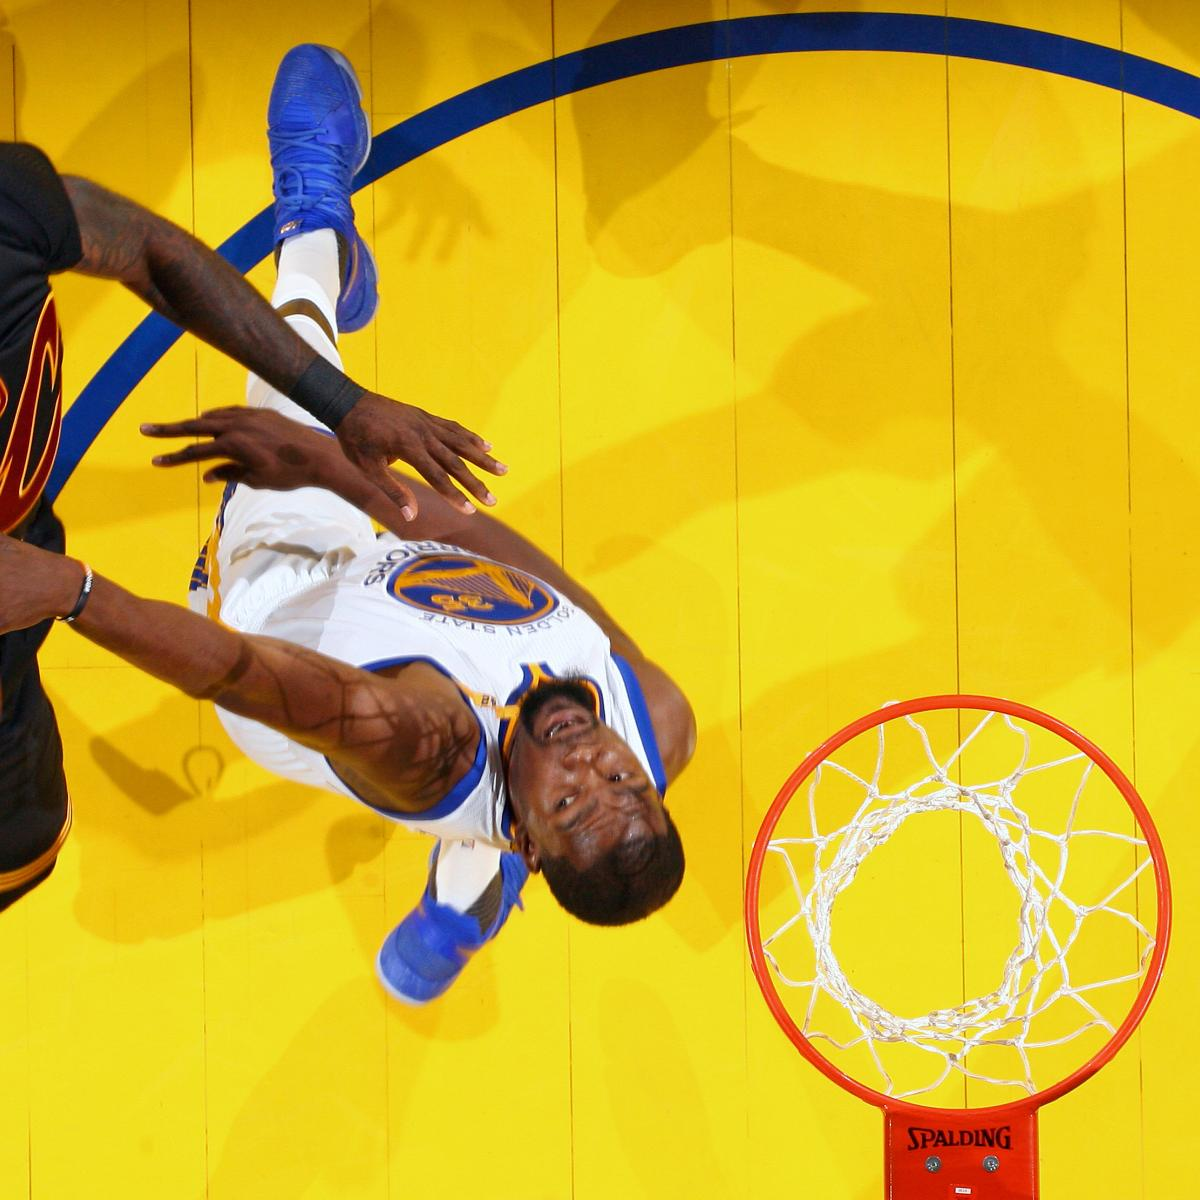 Golden State Warriors Vs. Cleveland Cavaliers: Game 3 Odds